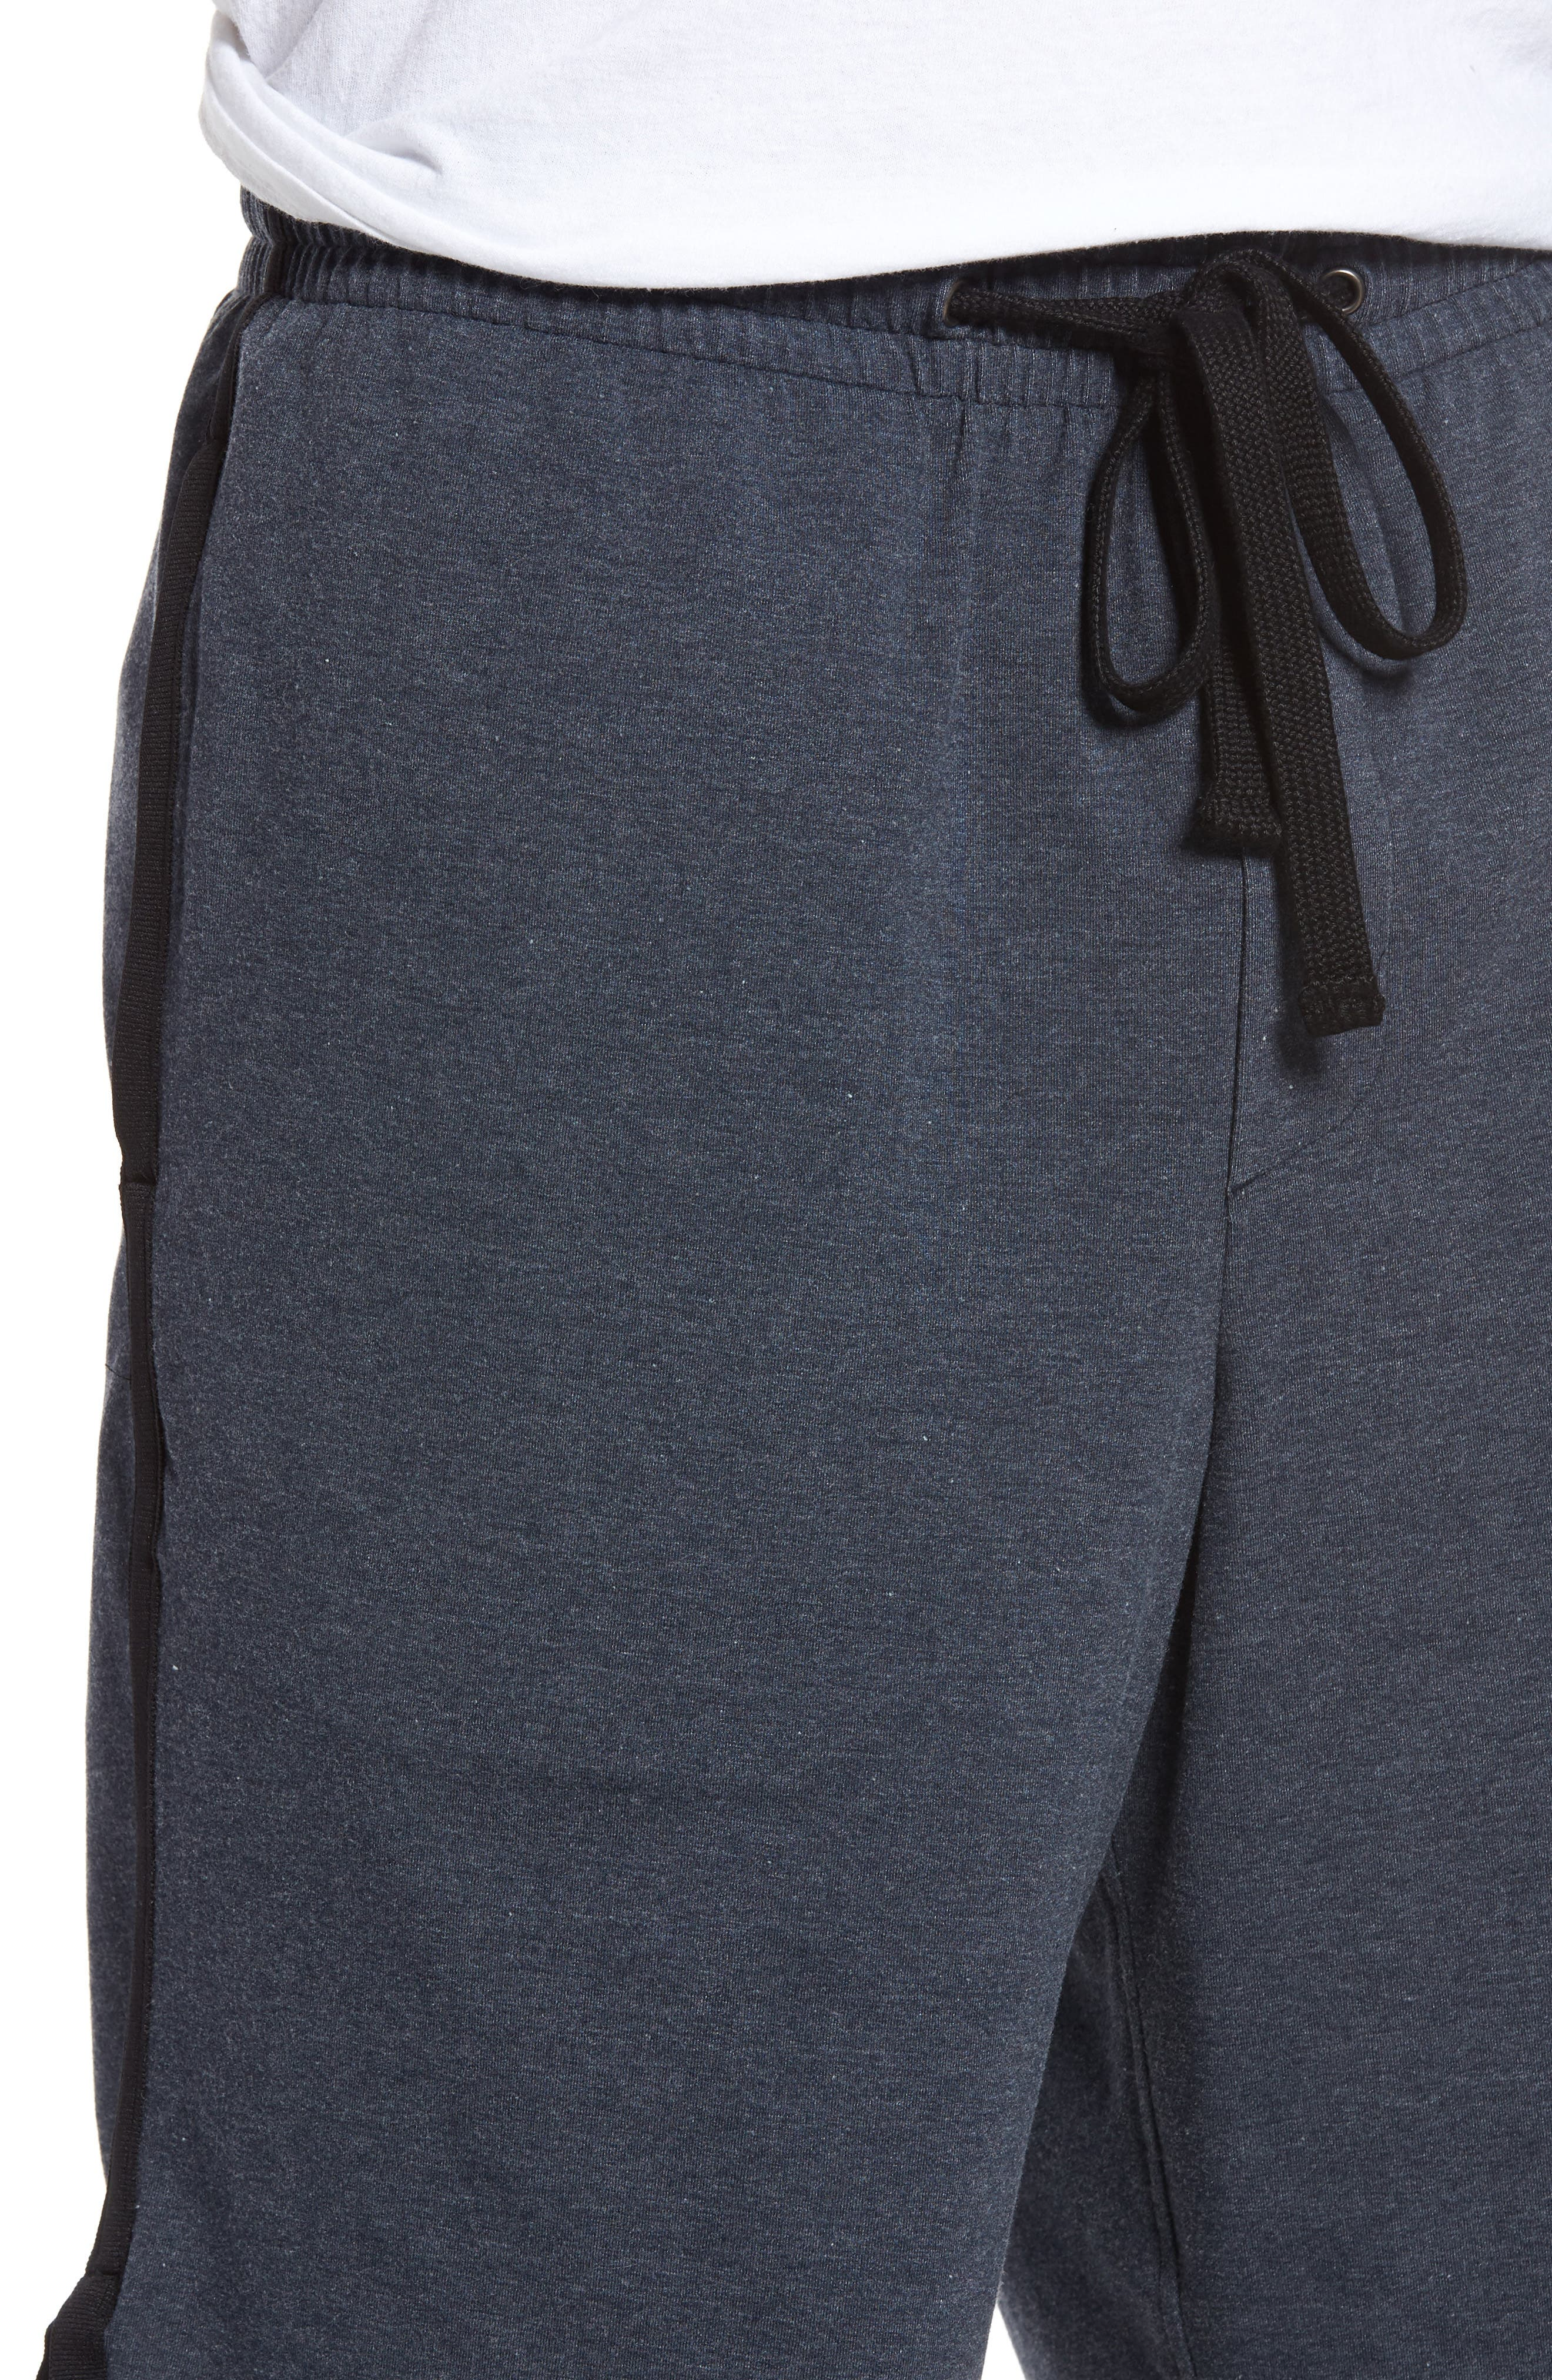 Drawstring Basketball Shorts,                             Alternate thumbnail 4, color,                             Deep